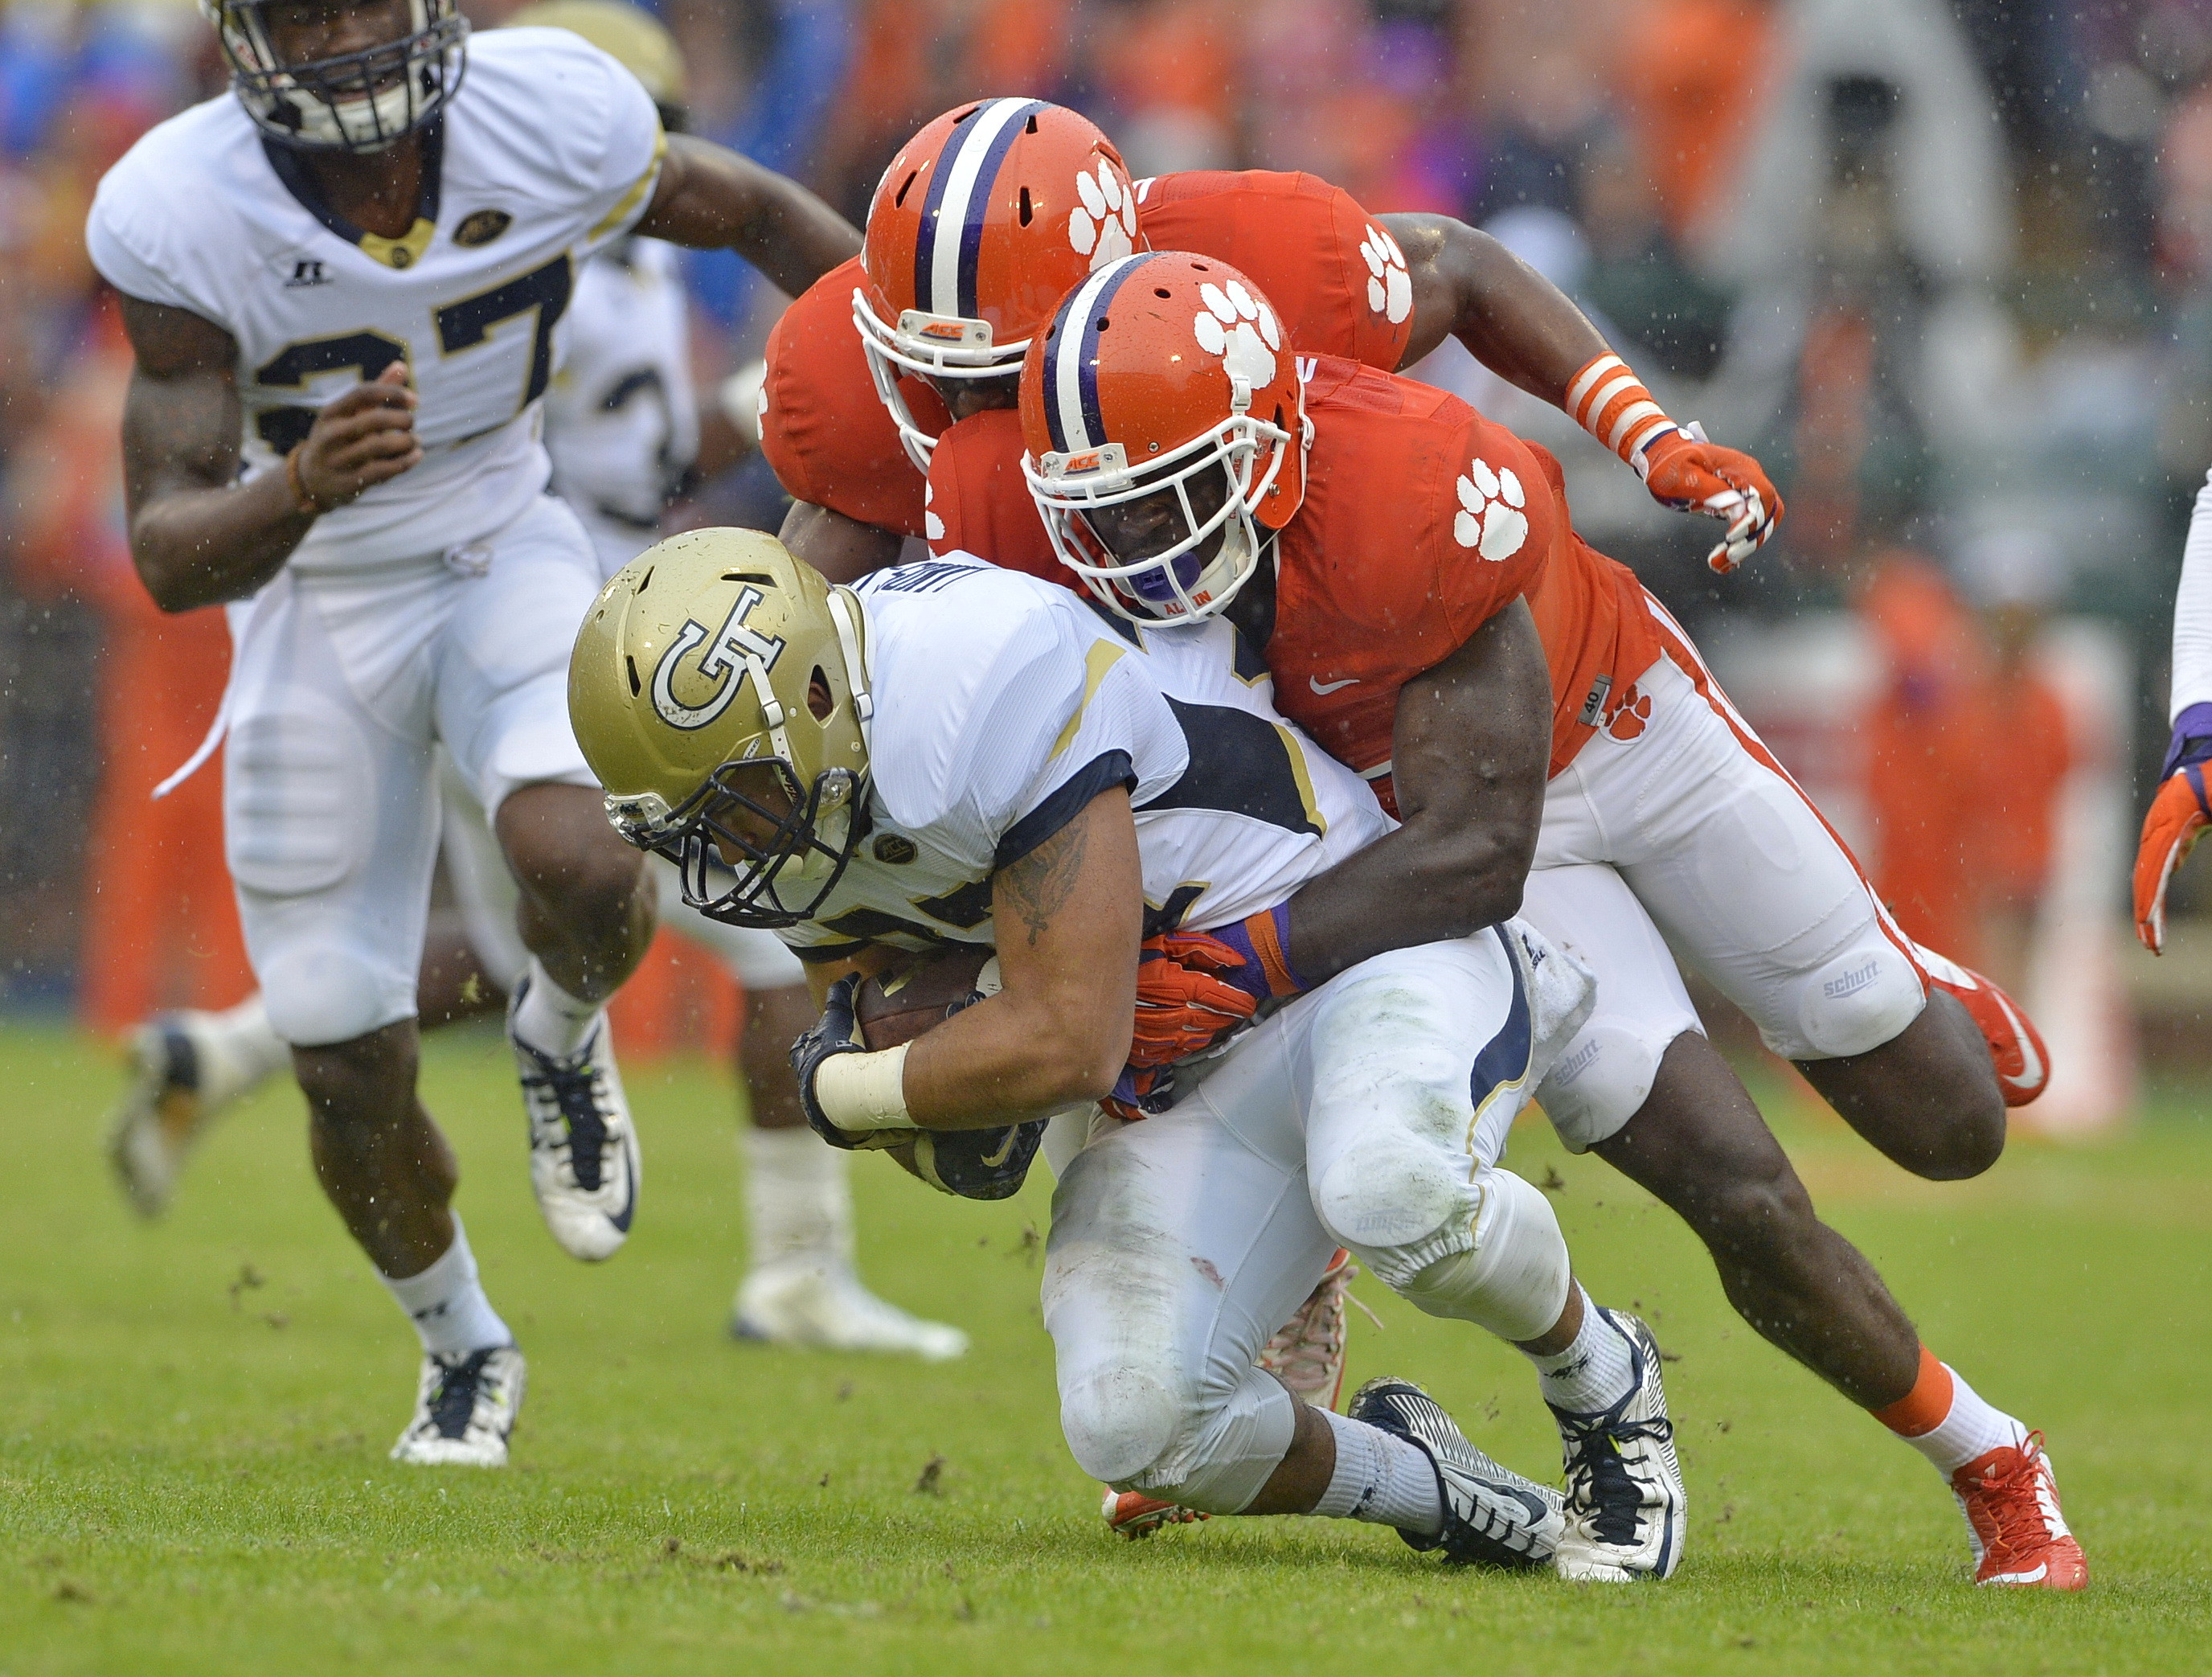 FILE - In this Oct. 10, 2015, file photo, Clemson's Jayron Kearse, center, and Richard Yeargin tackle Georgia Tech's Mikell Lands-Davis during the first half of an NCAA college football game in Clemson, S.C. No one pushes No. 1 Clemson's defense harder th